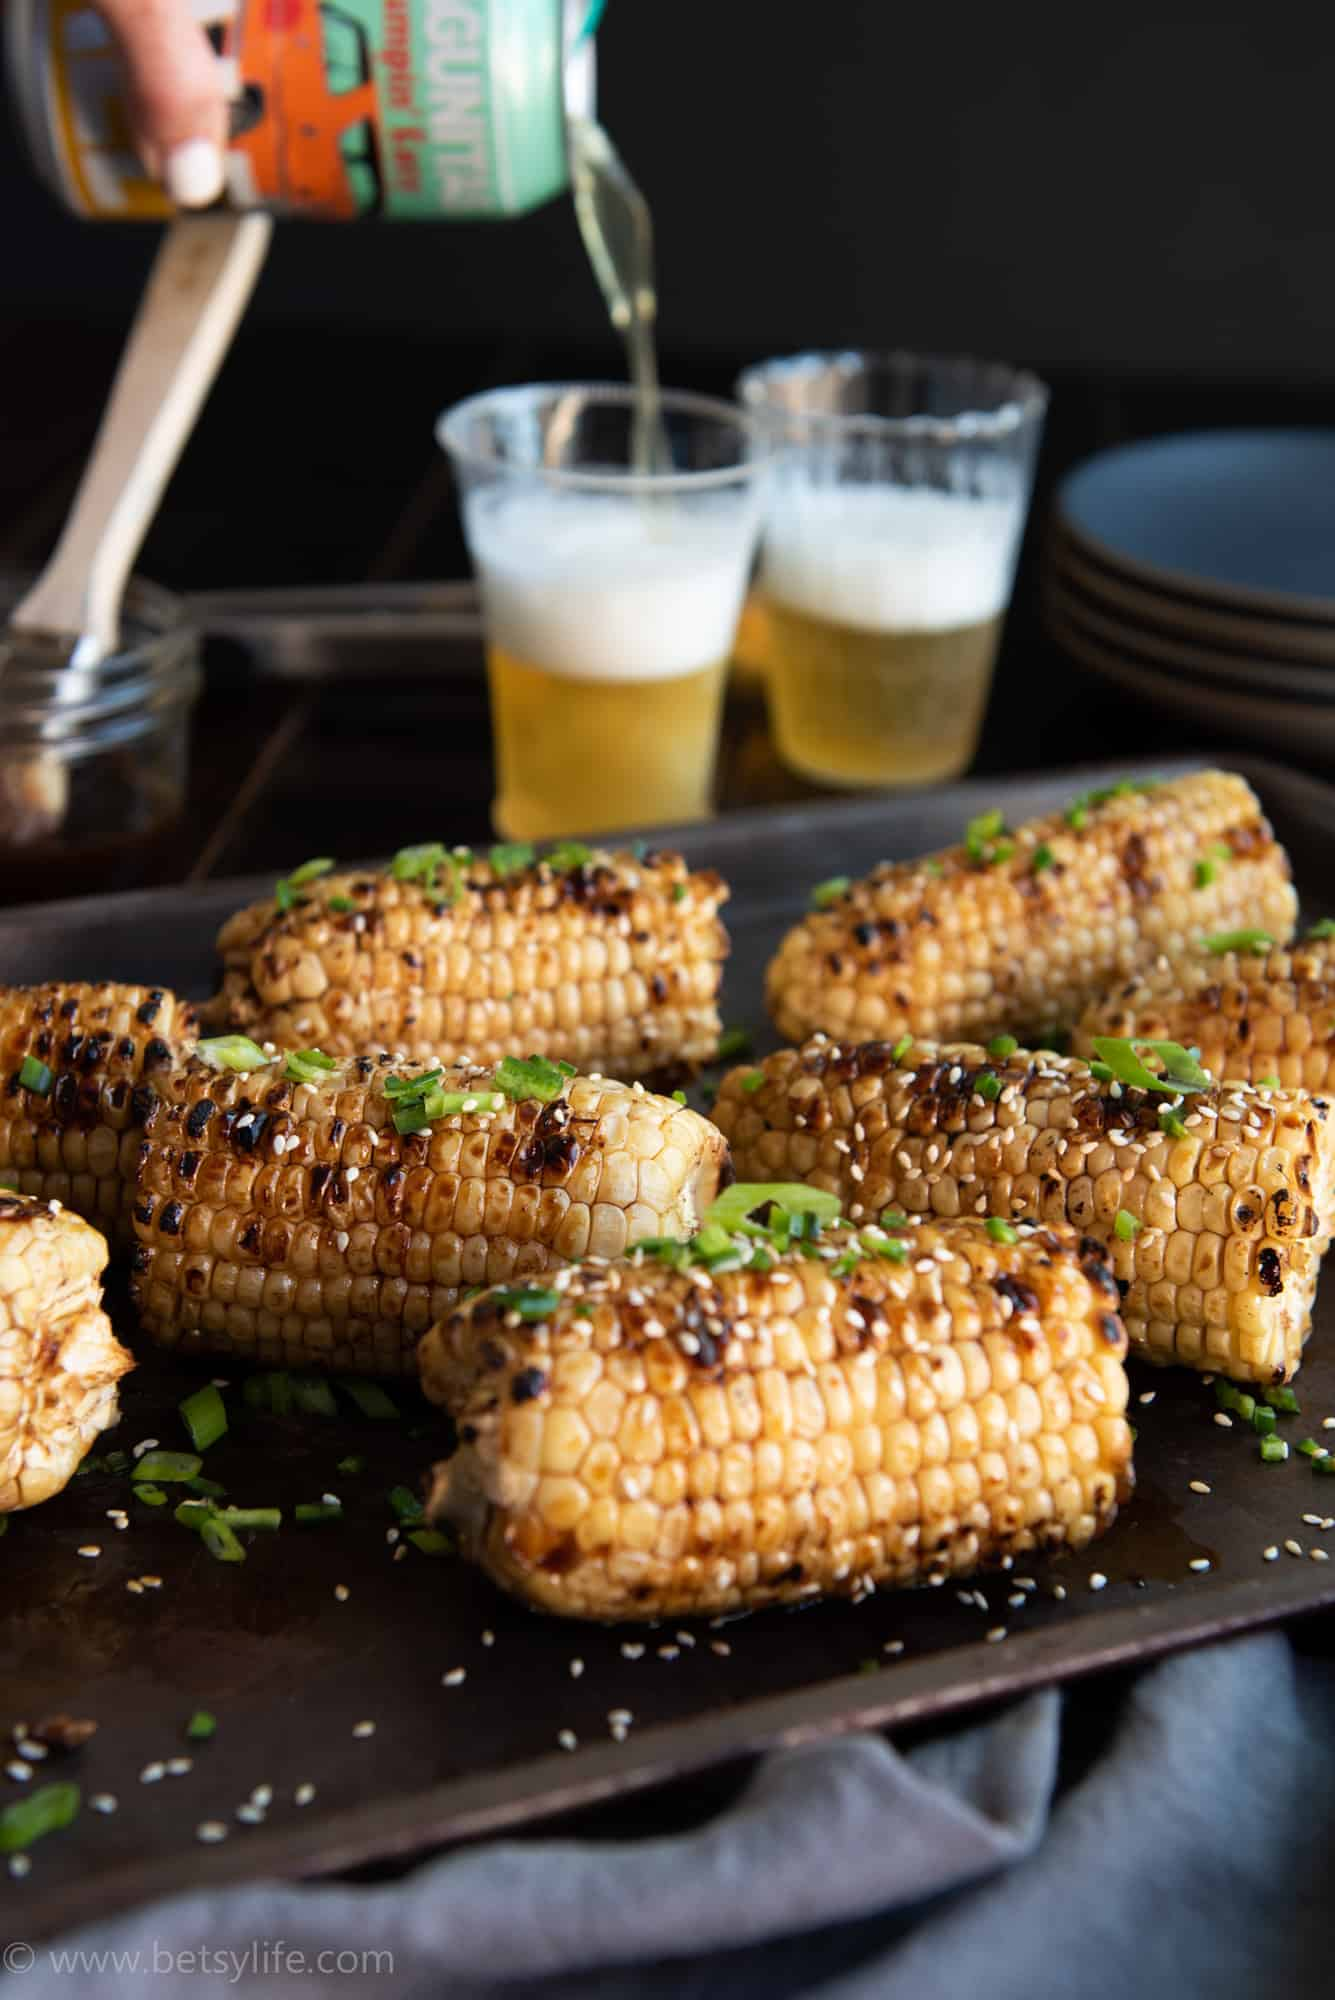 sesame glazed corn on the cob garnished with green herbs on a baking sheet. Beer being poured into glasses in the background